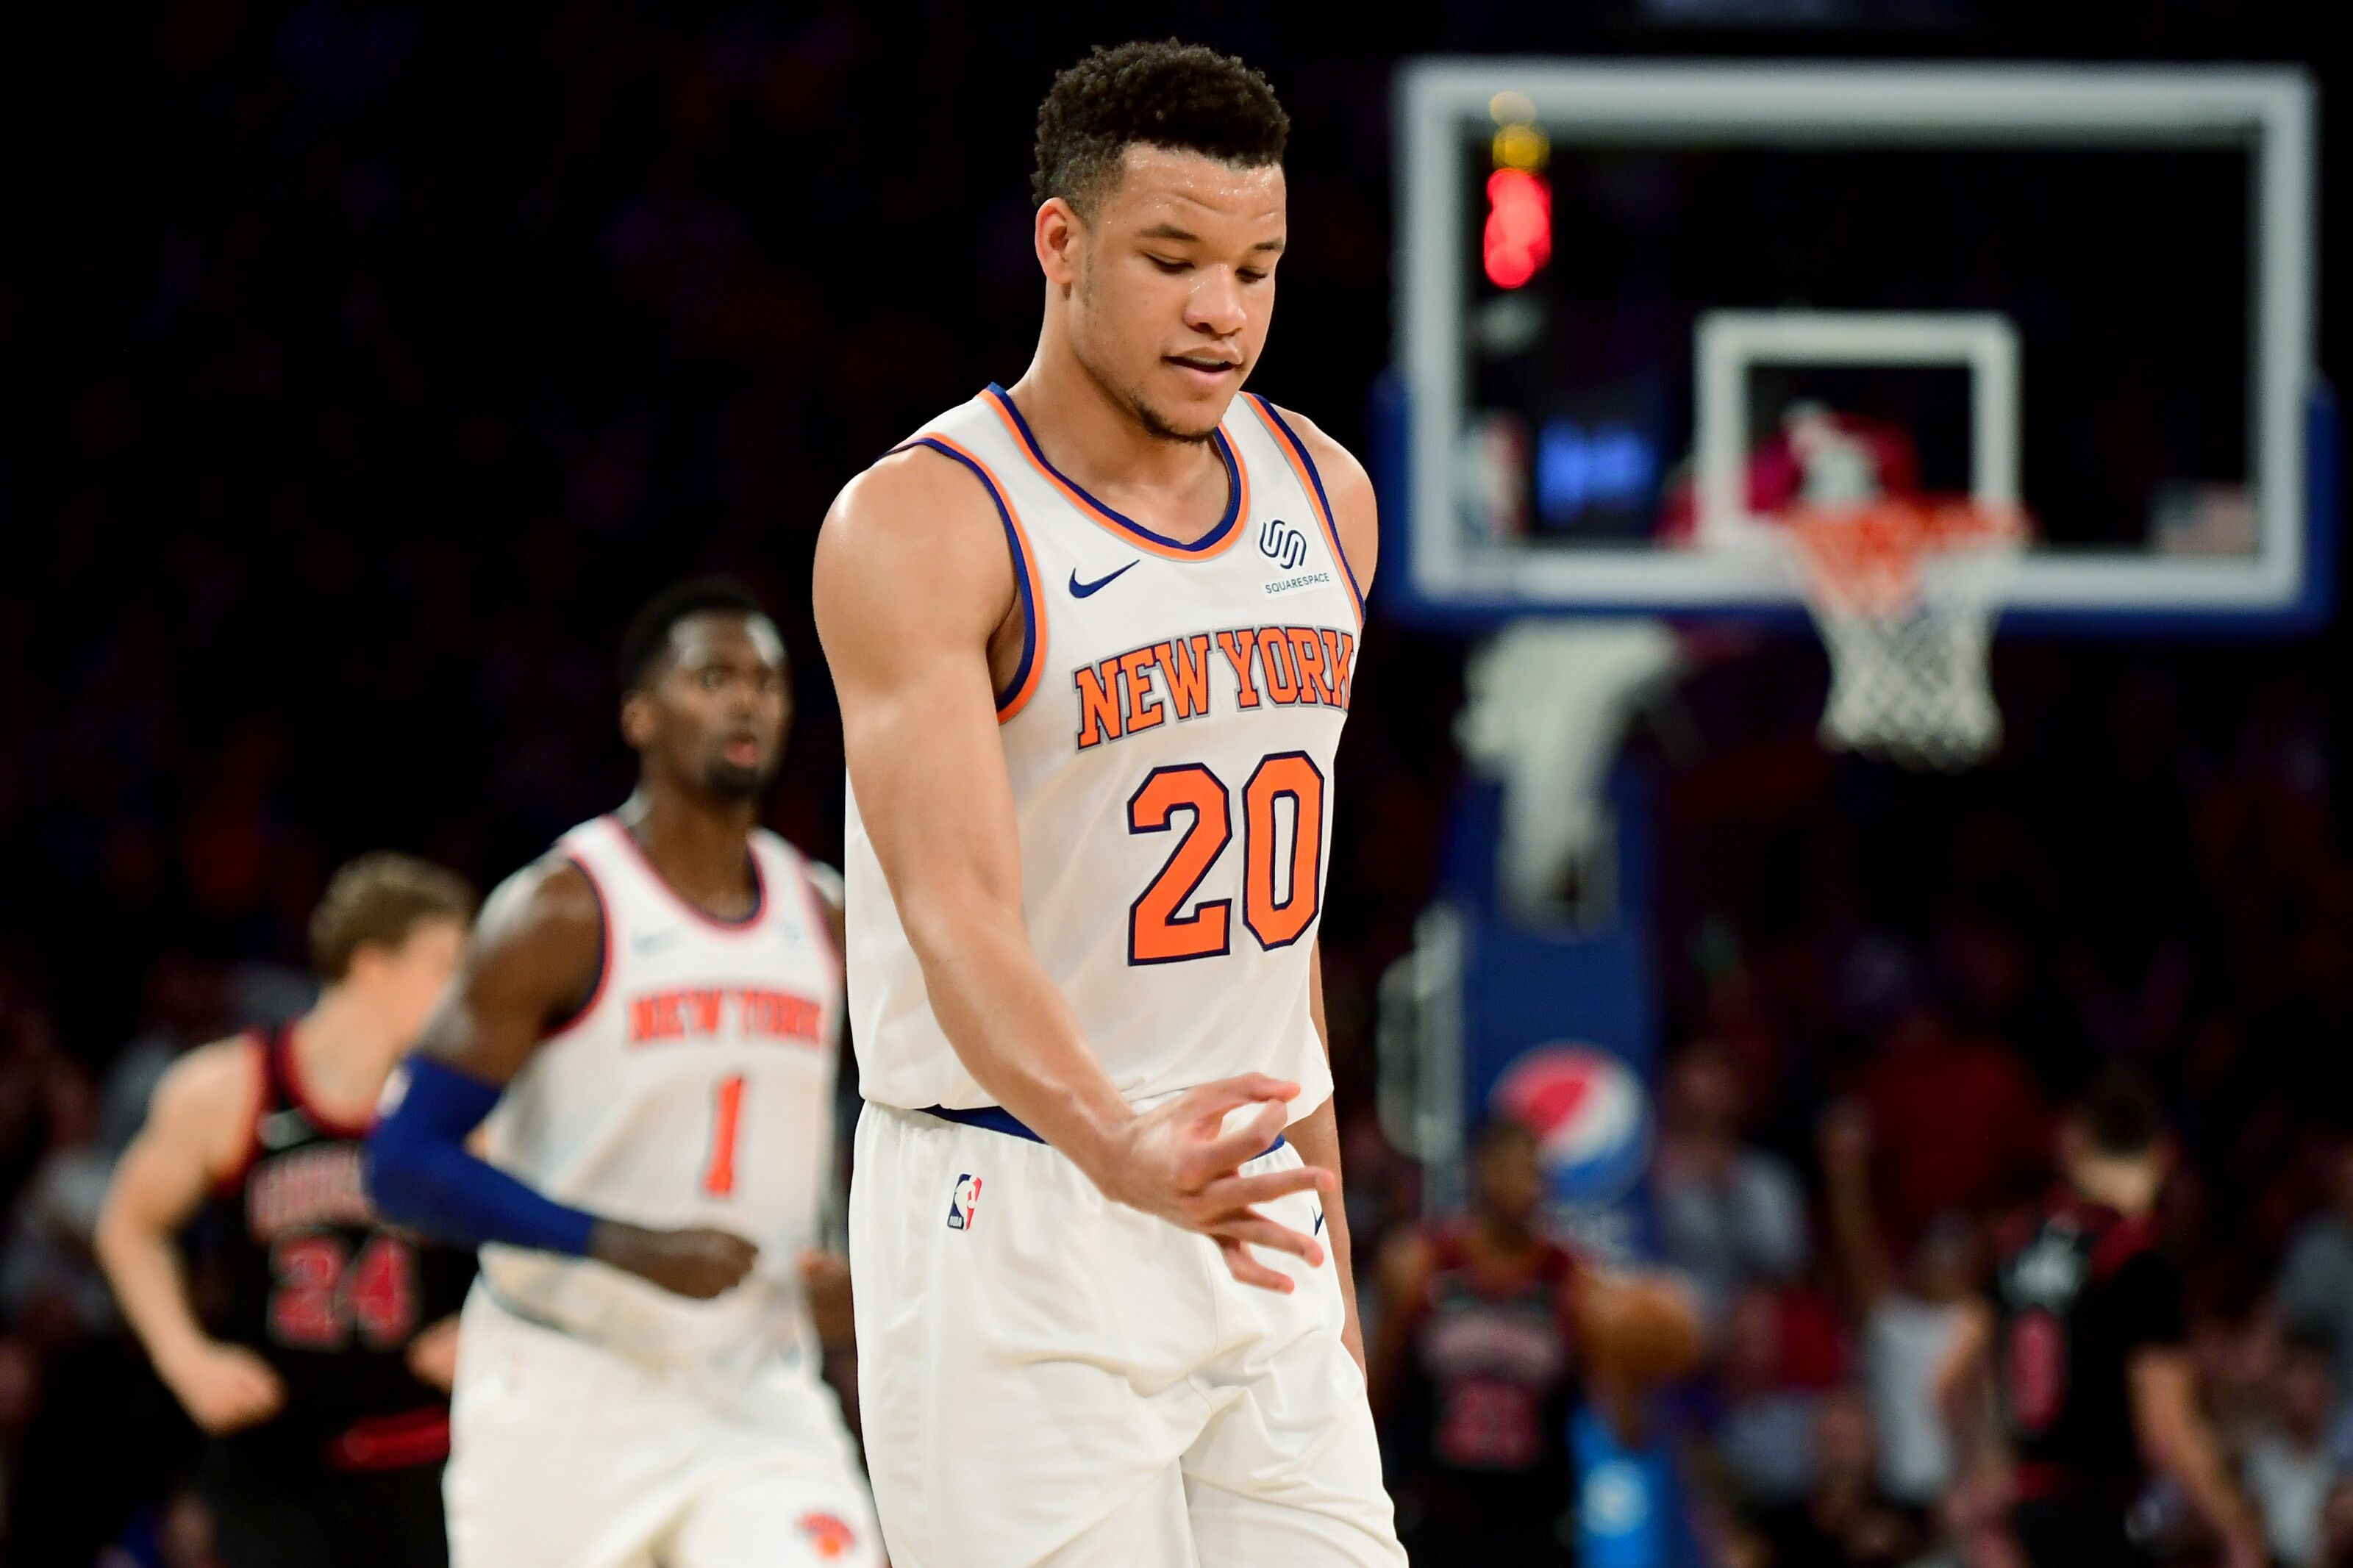 New York Knicks: December 15th can't come soon enough